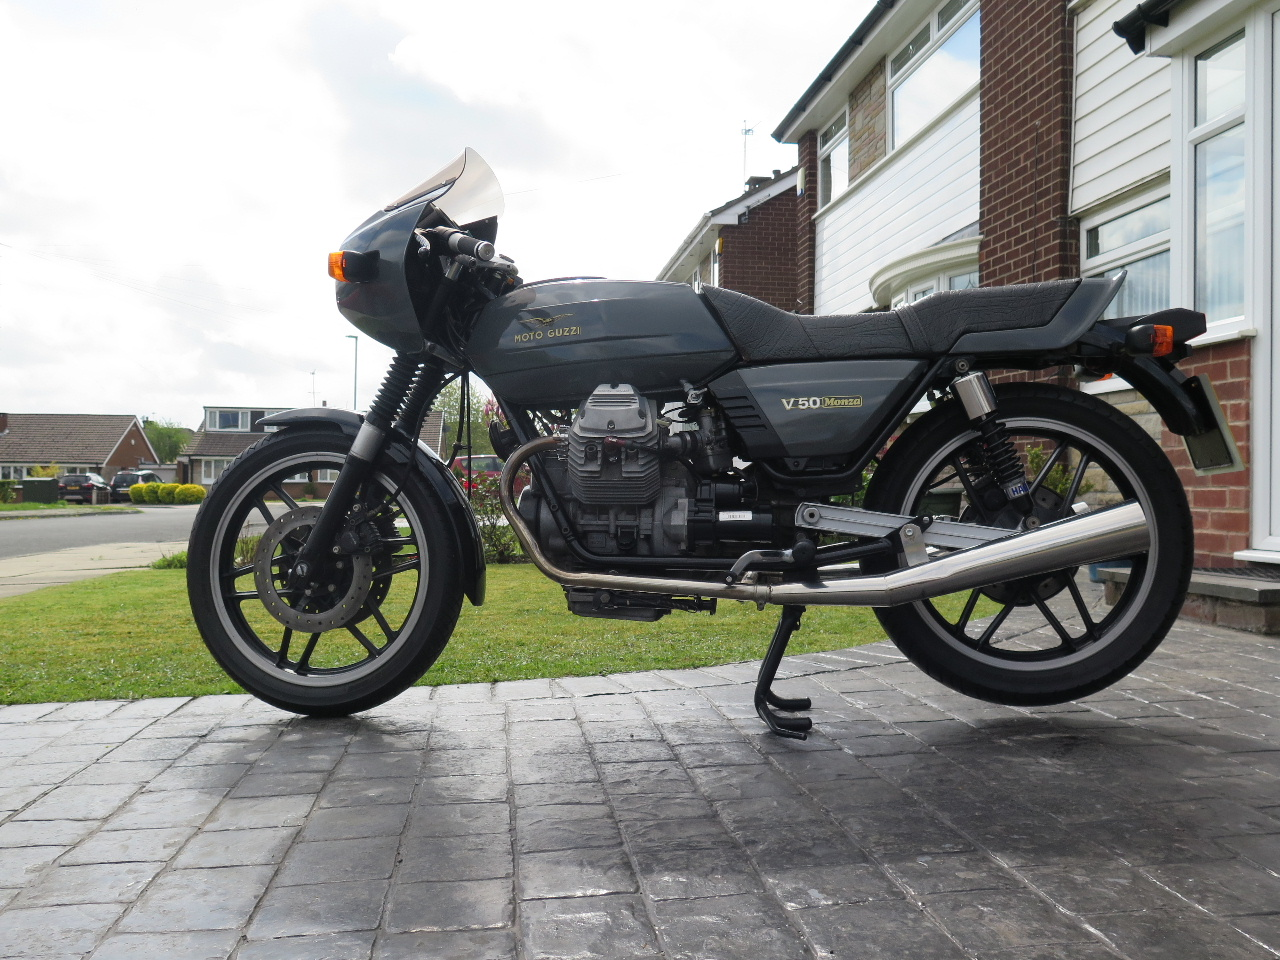 Moto Guzzi V50 Monza For Sale Motorbikes Blog